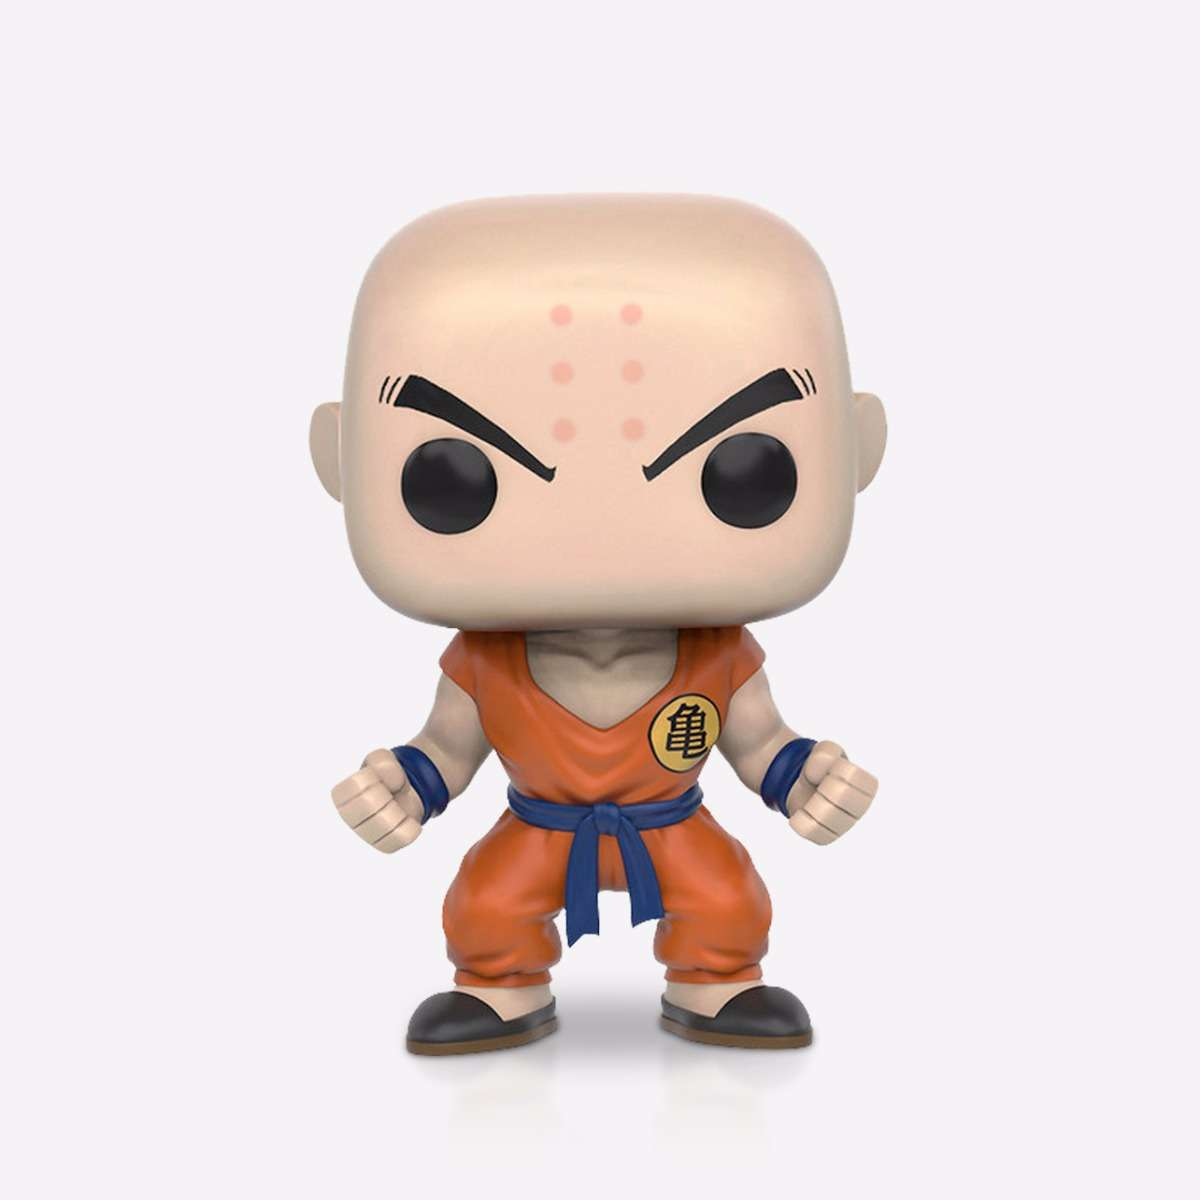 Funko Pop - Krillin Figures & Collectibles